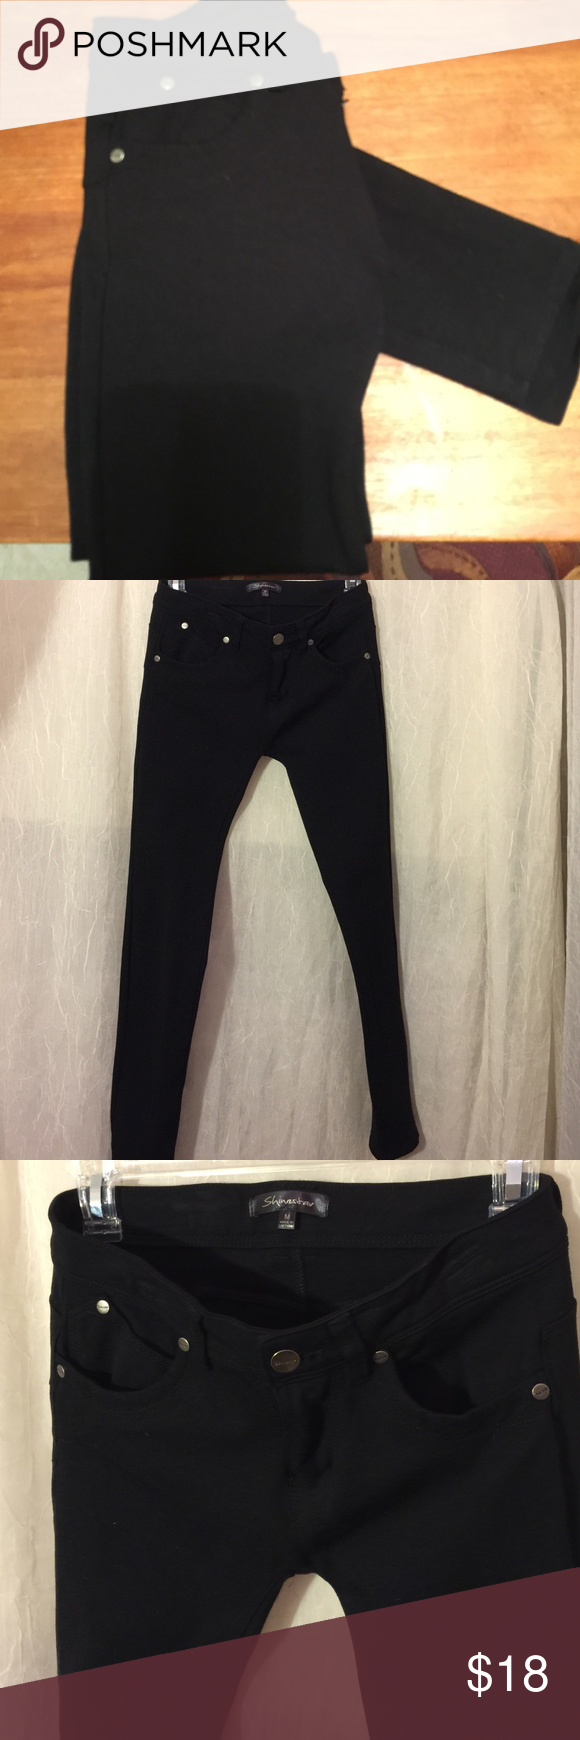 6559b1cdeec95 Shinestar Women's Black Stretchy Jeggings Style: Jeans Material: 68% Rayon  27% Nylon